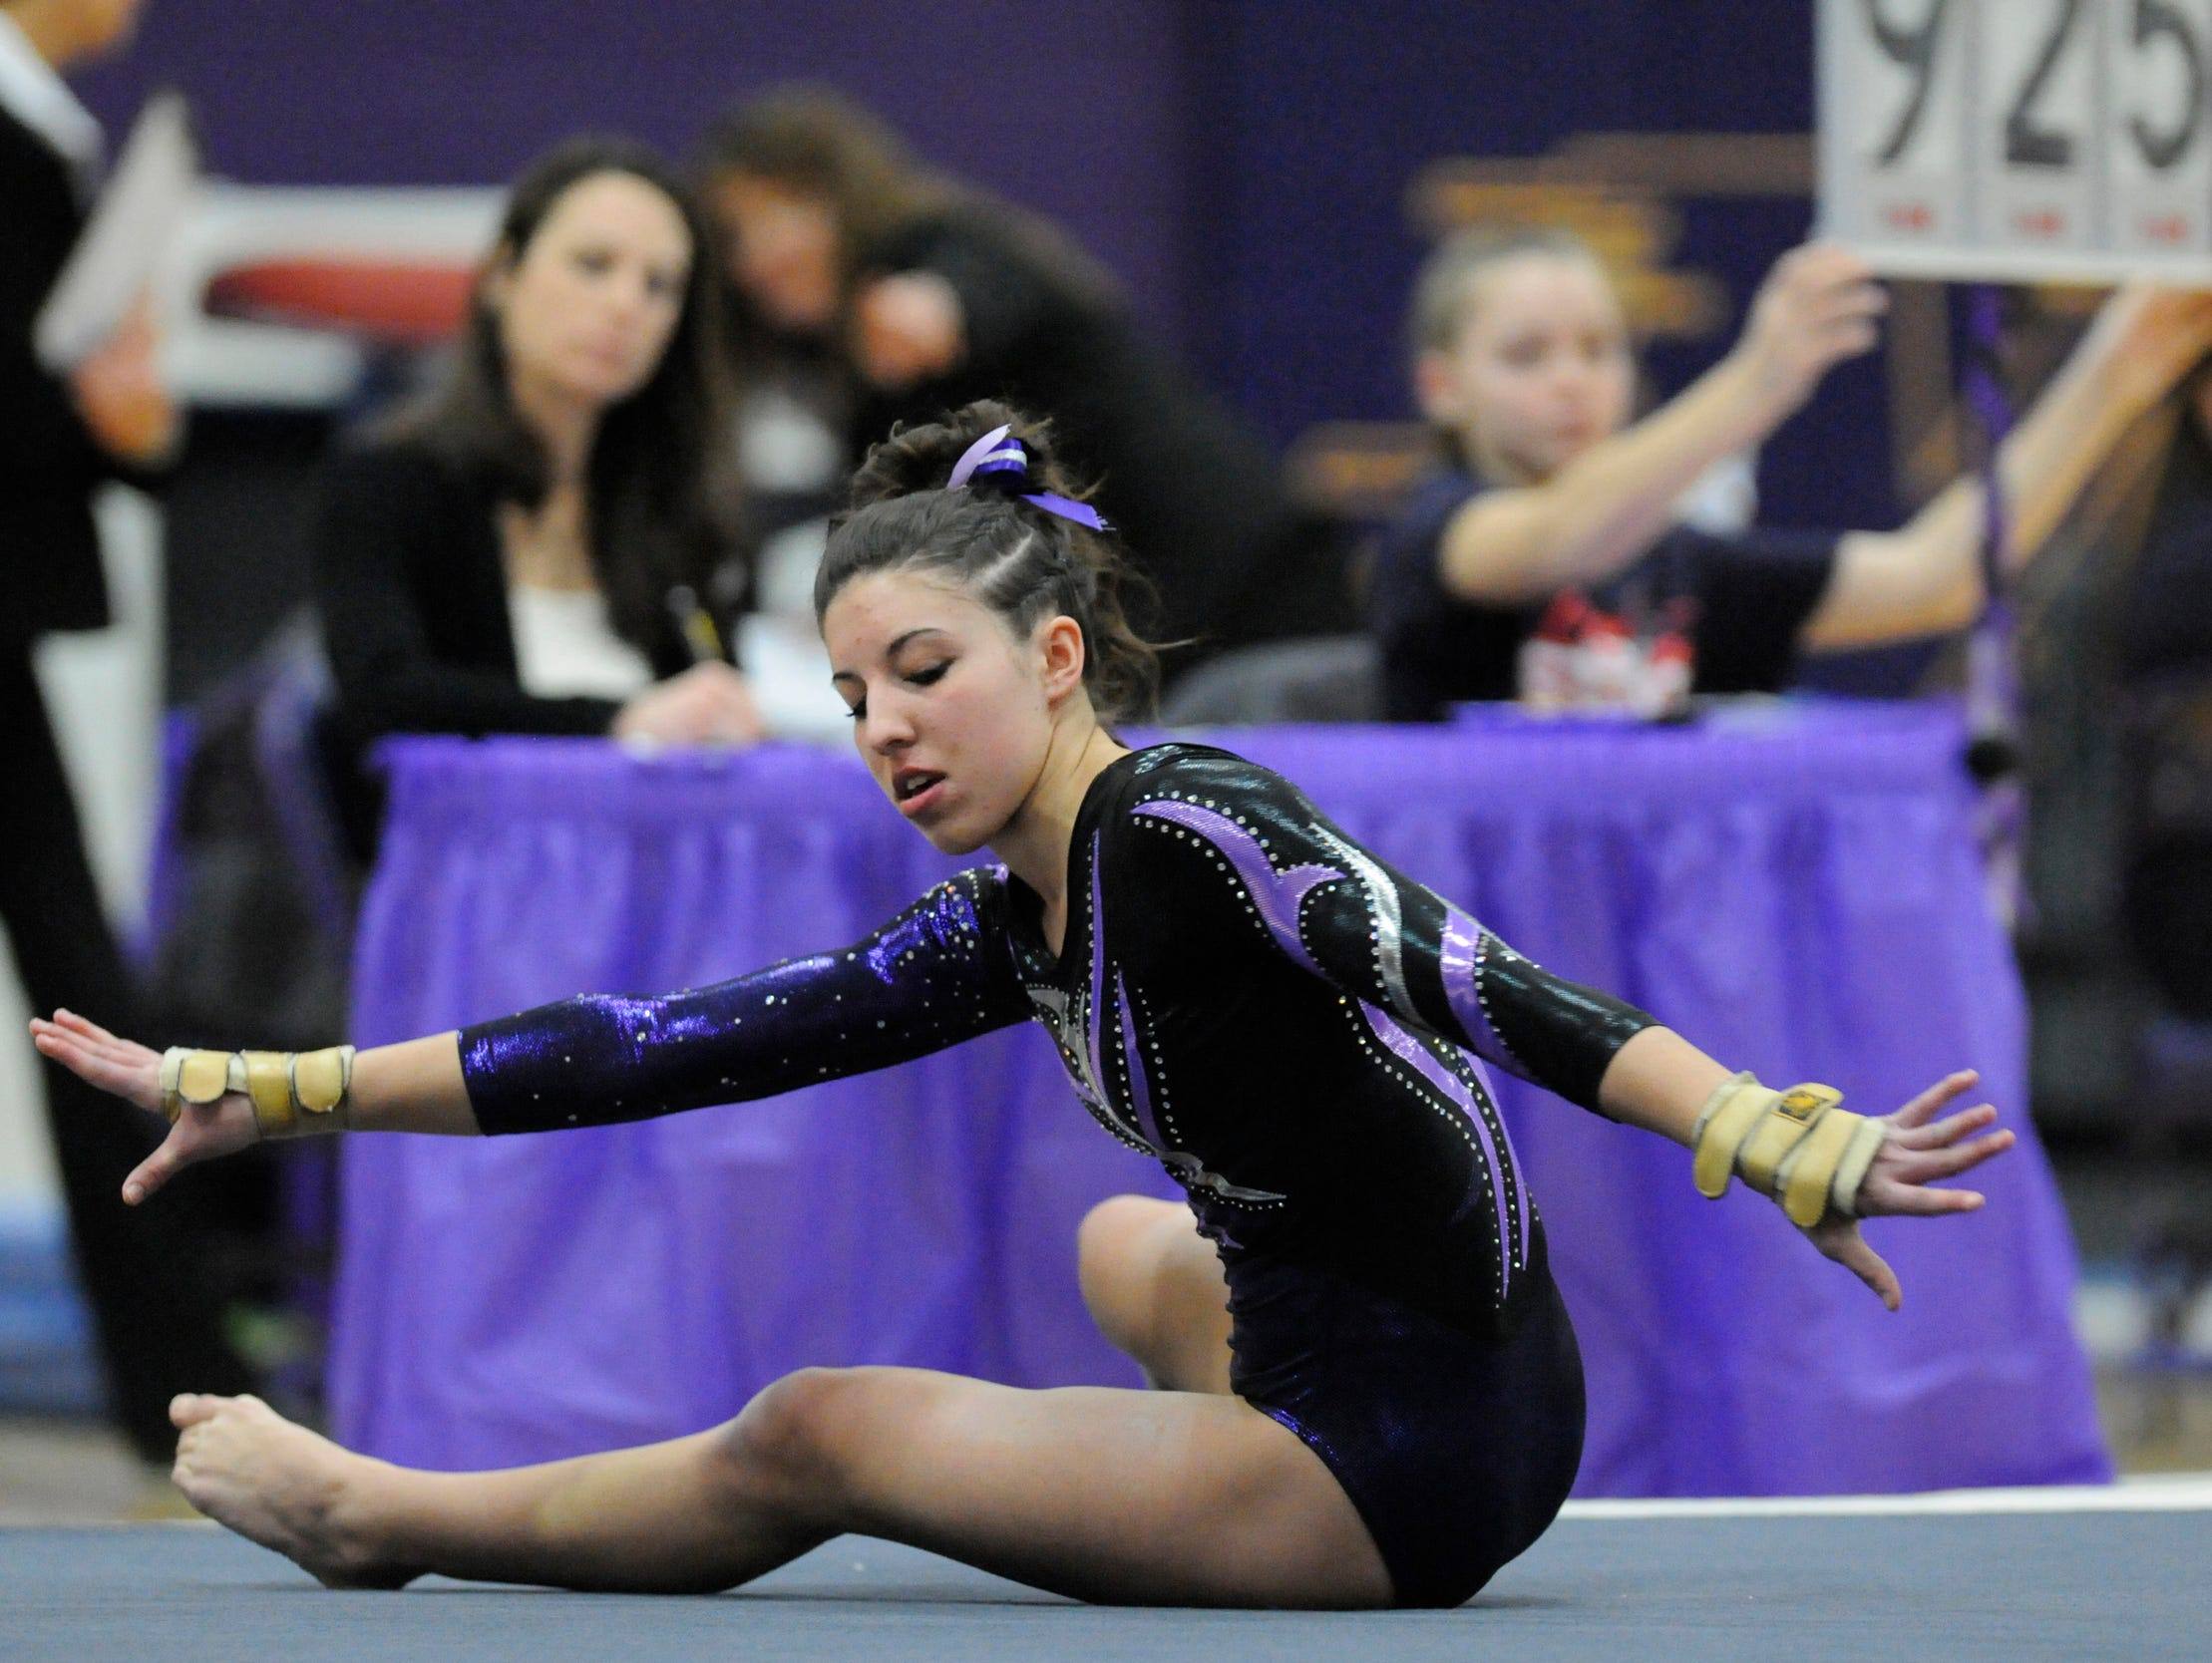 Lydia Butkowski of Melrose starts her floor routine during the Class A state gymnastics true team competition on Jan. 24 in Melrose.